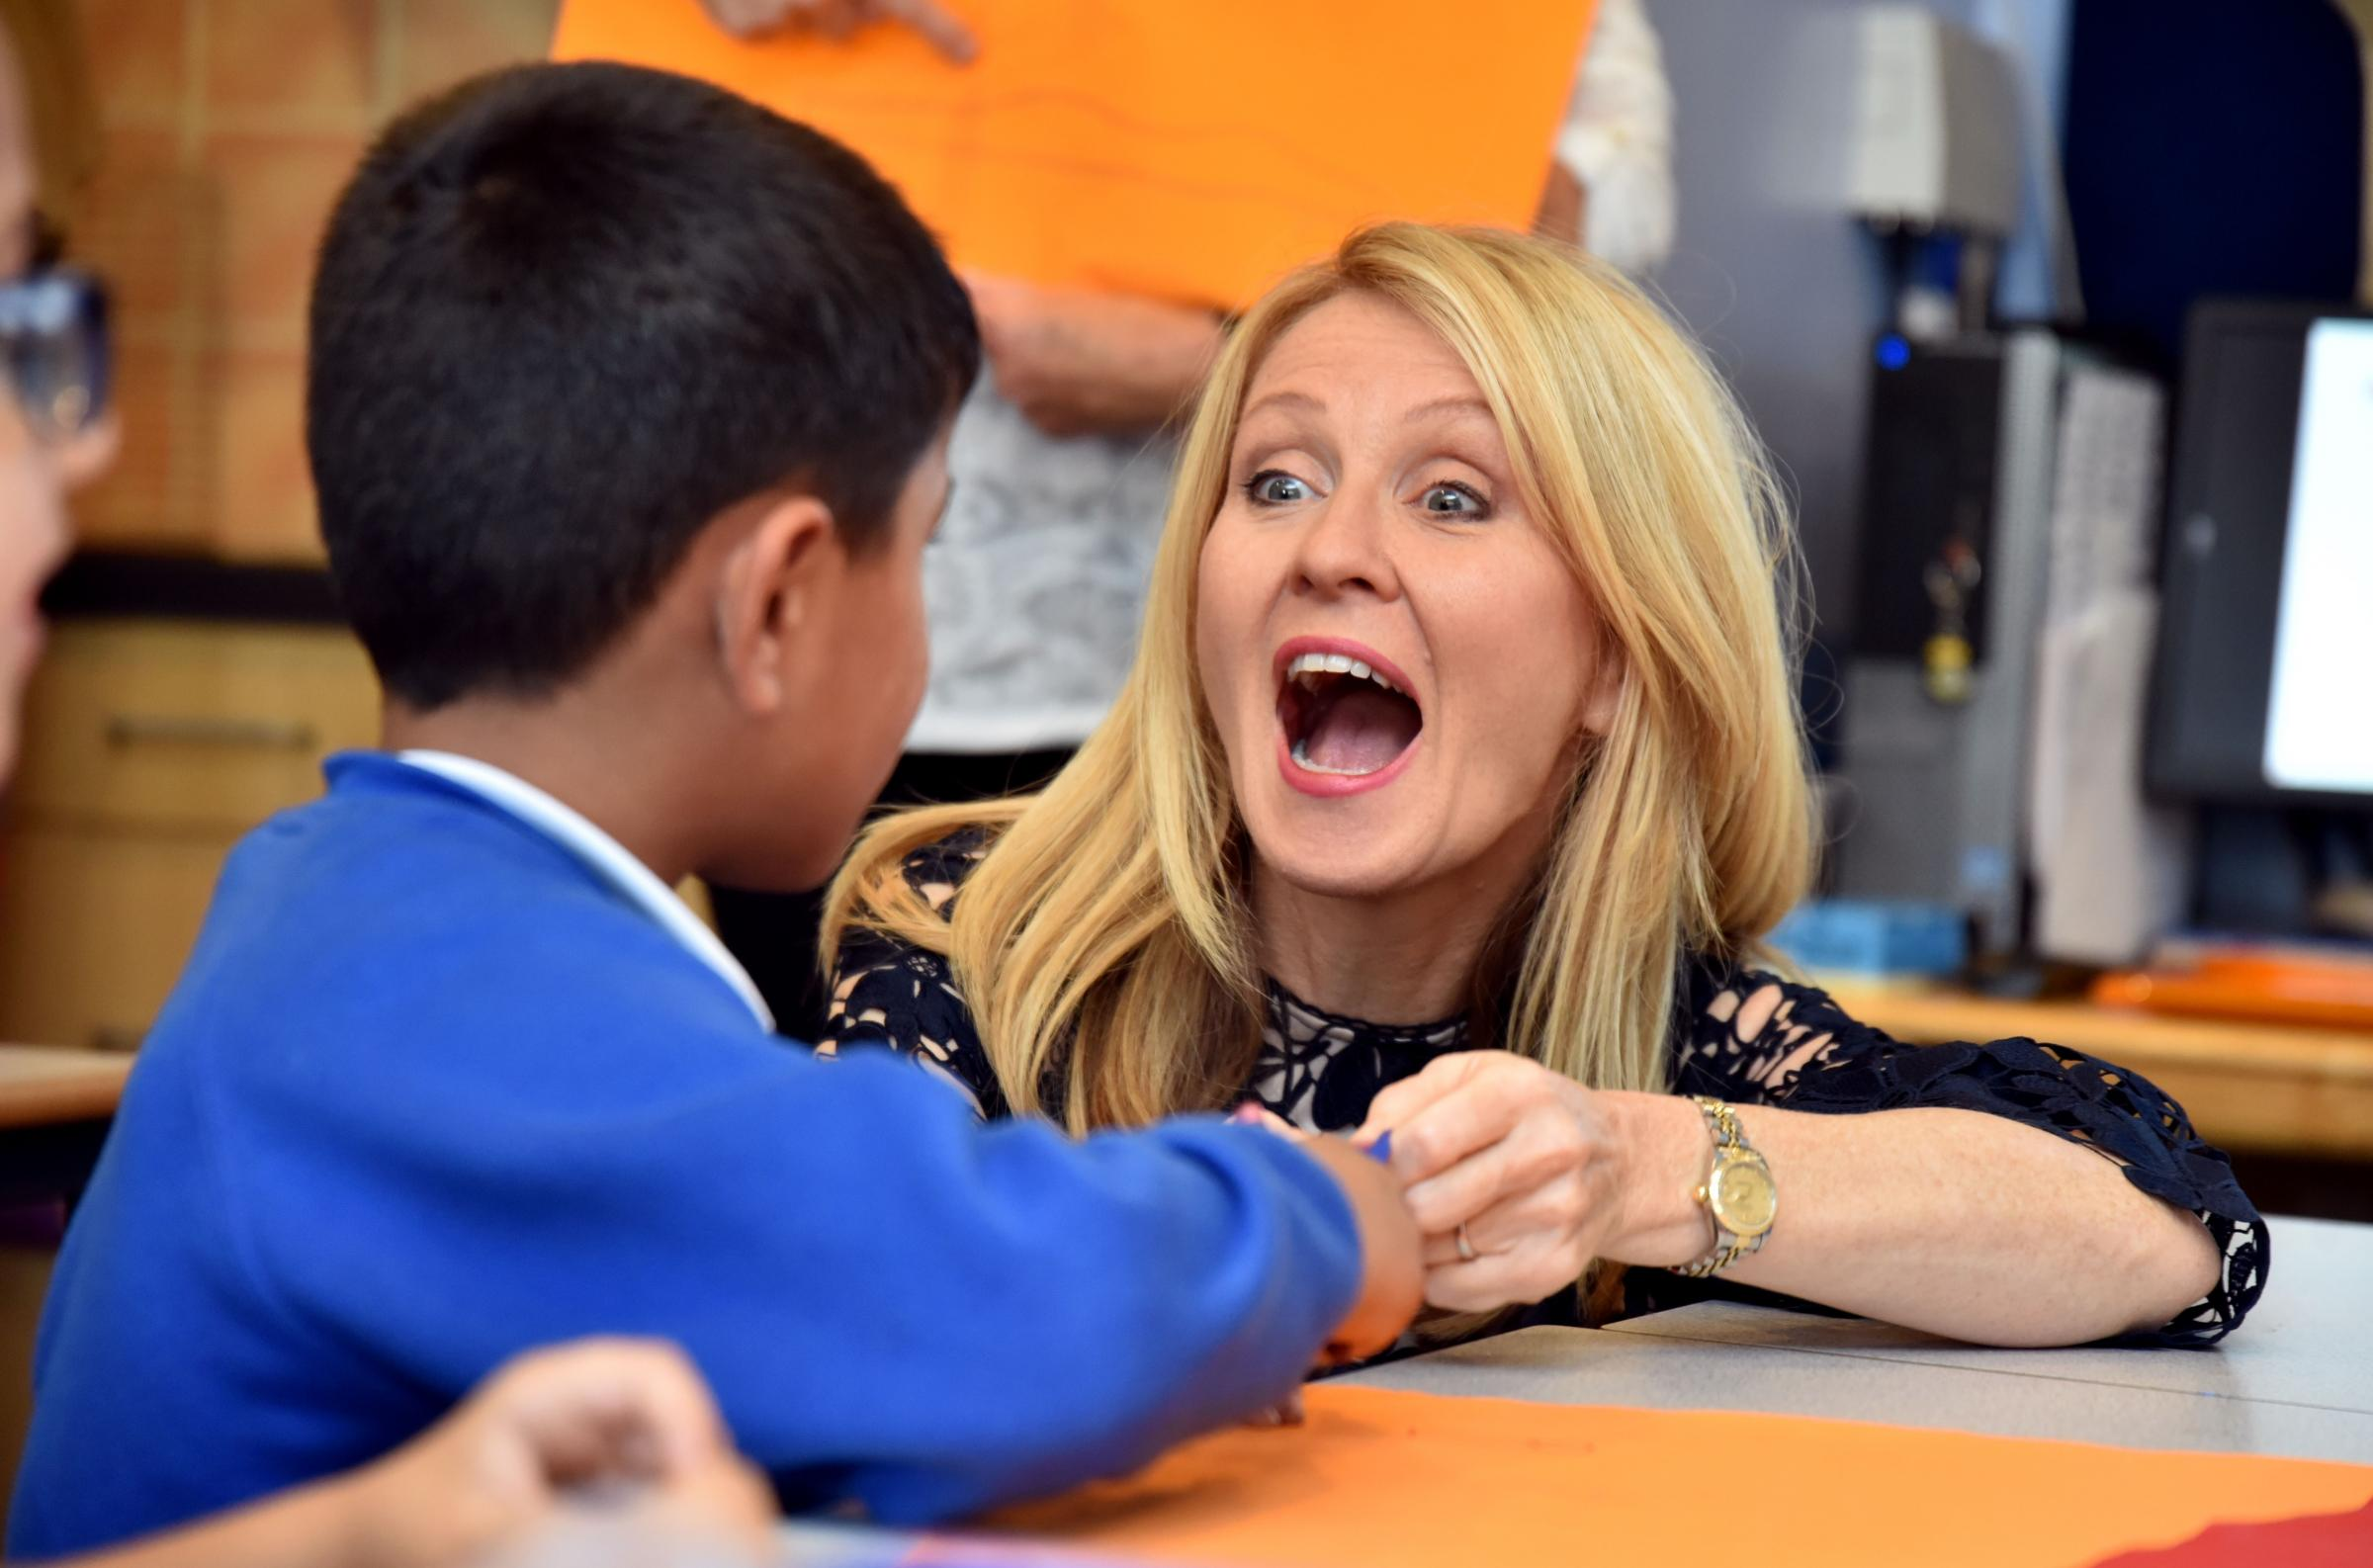 Feversham Primary School in Bradford visited by MP Esther McVey